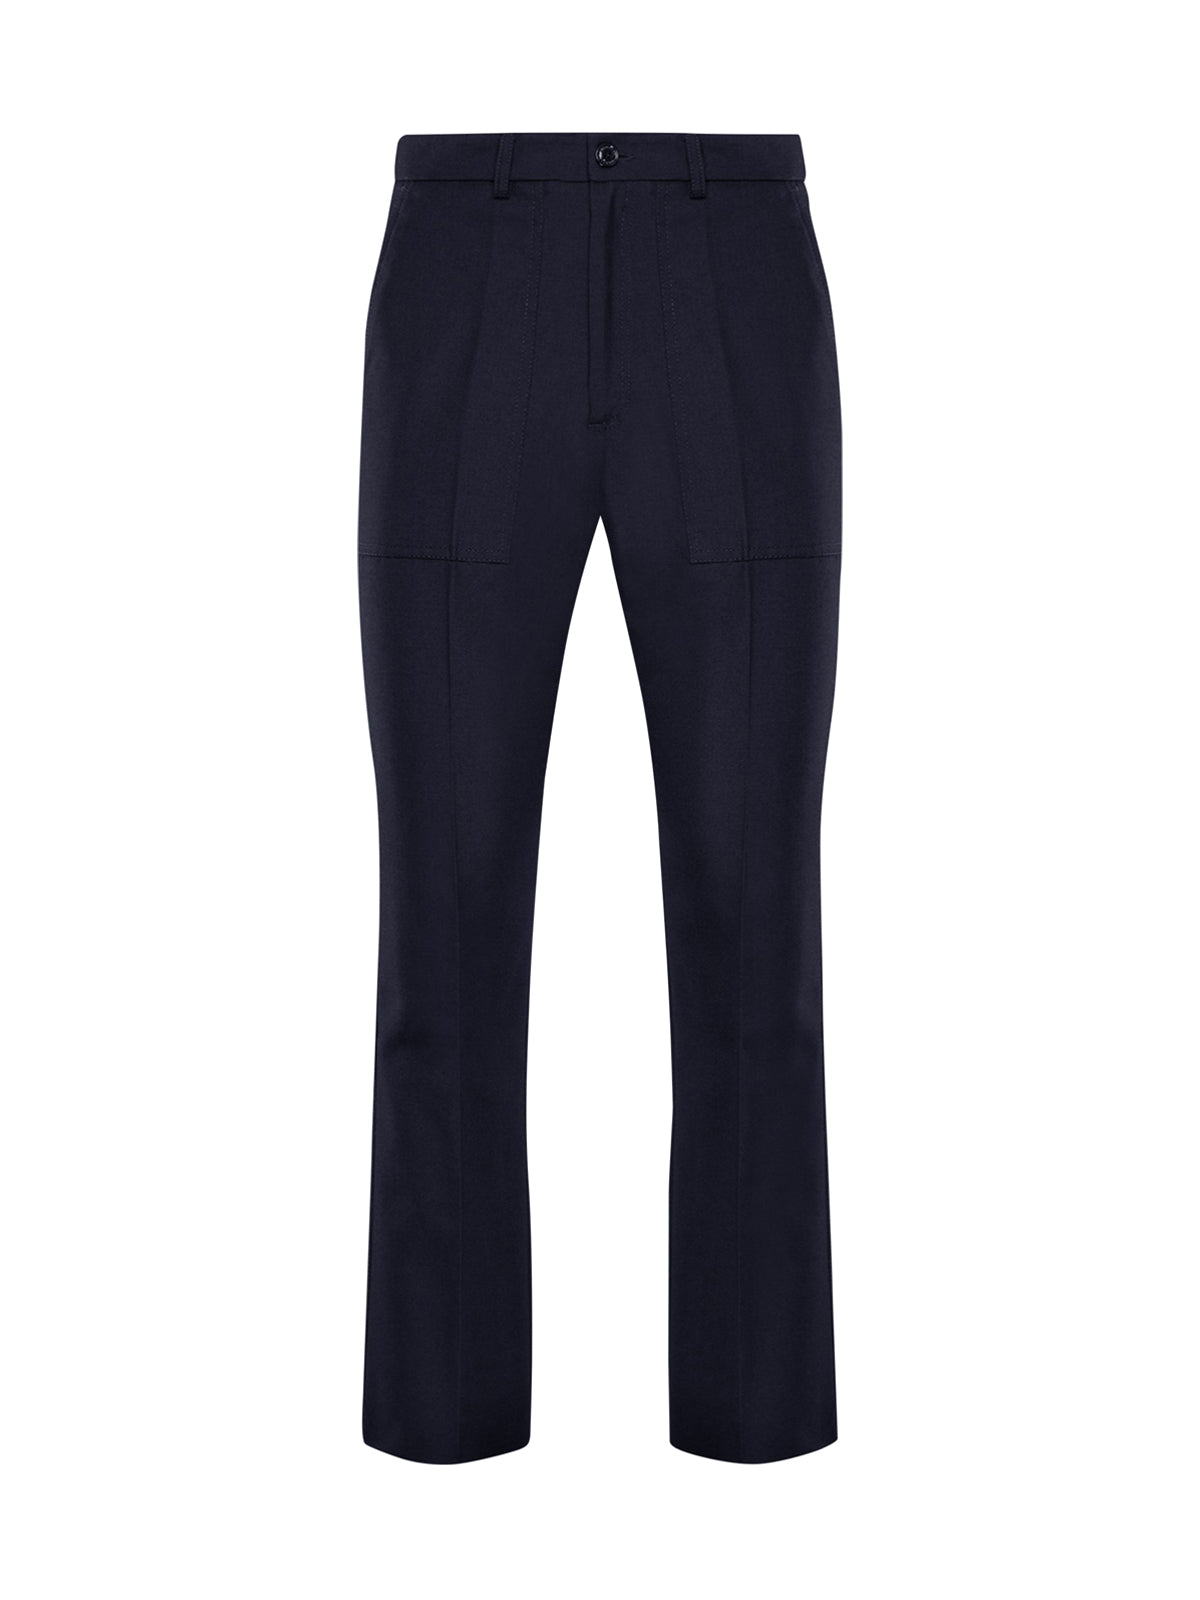 Tailored trousers 2 Moncler 1952